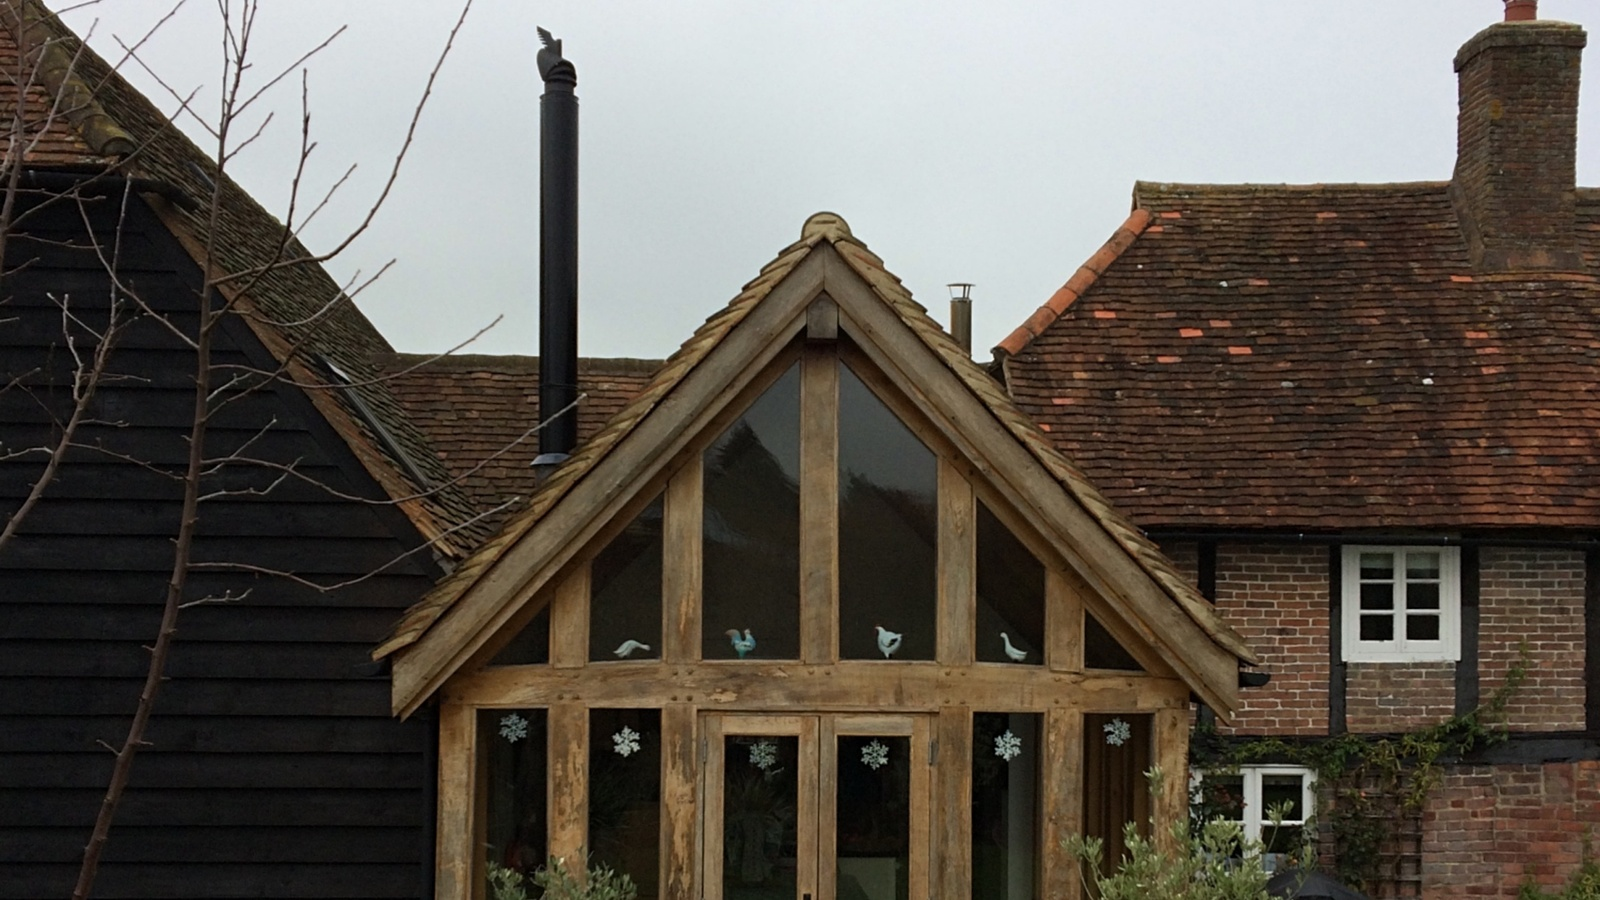 Listed buildings permission was sought for this oak frame barn conversion extension to a family kitchen.